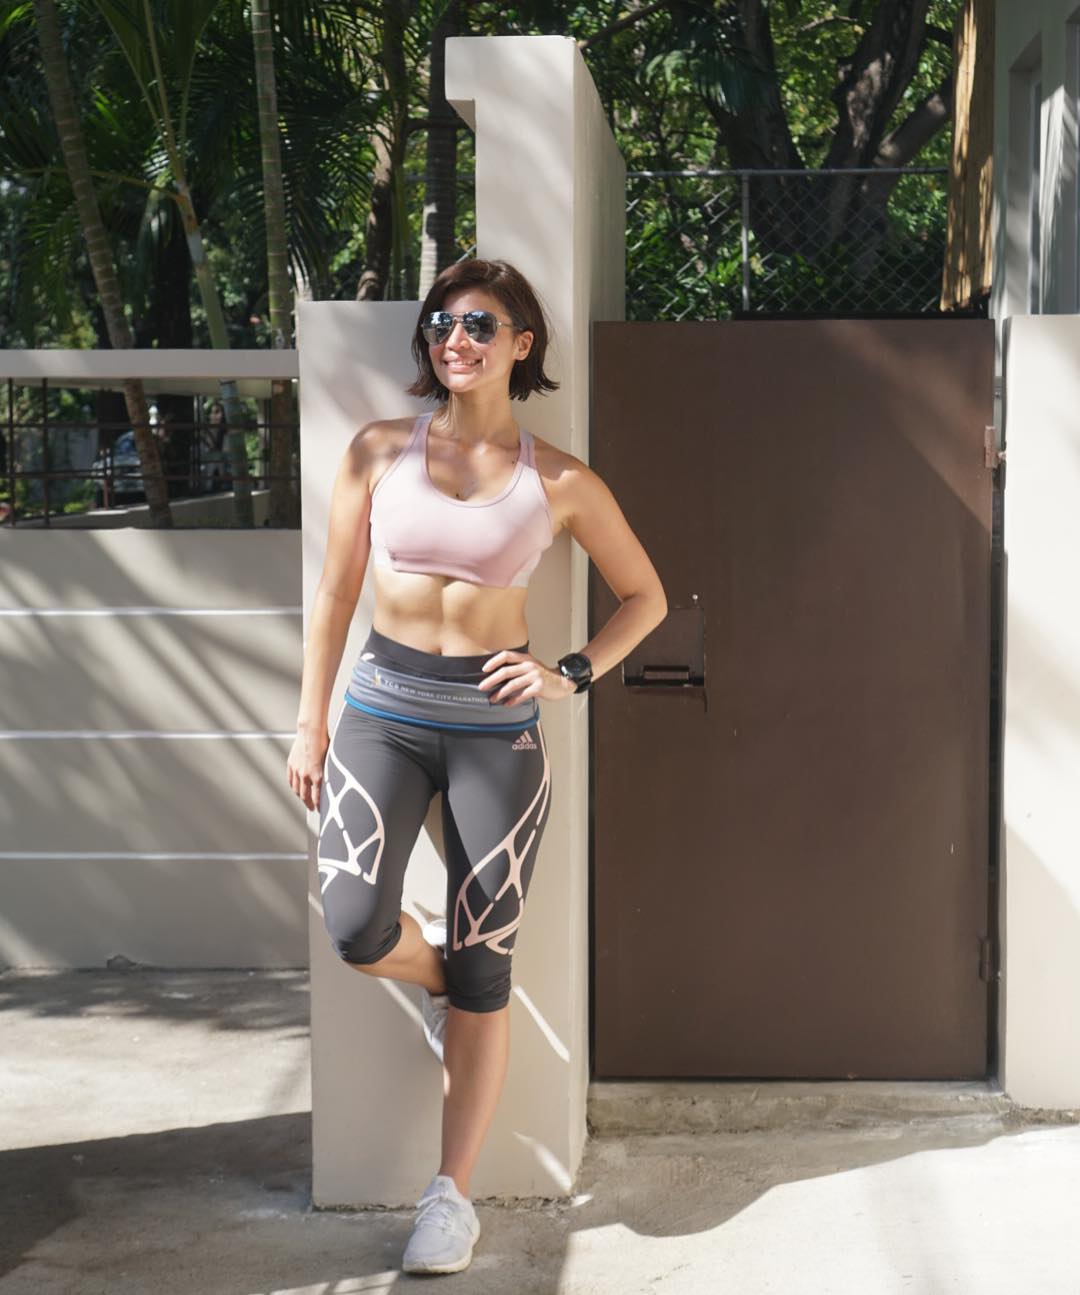 35 sexy photos of Anne Curtis that will make your holidays